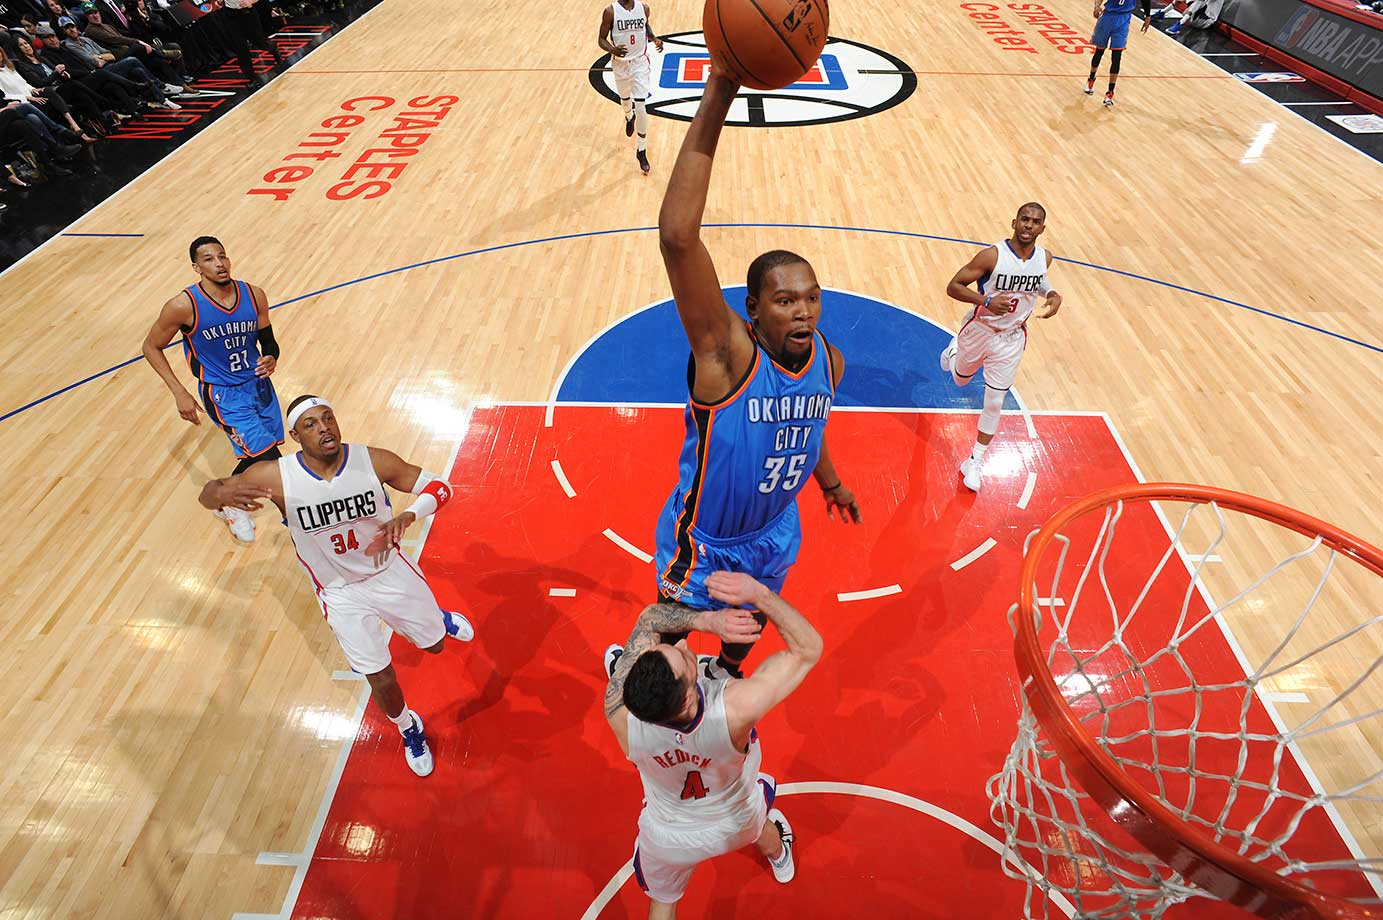 Kevin Durant of Oklahoma City goes for a dunk during a 103-98 loss to the Los Angeles Clippers.